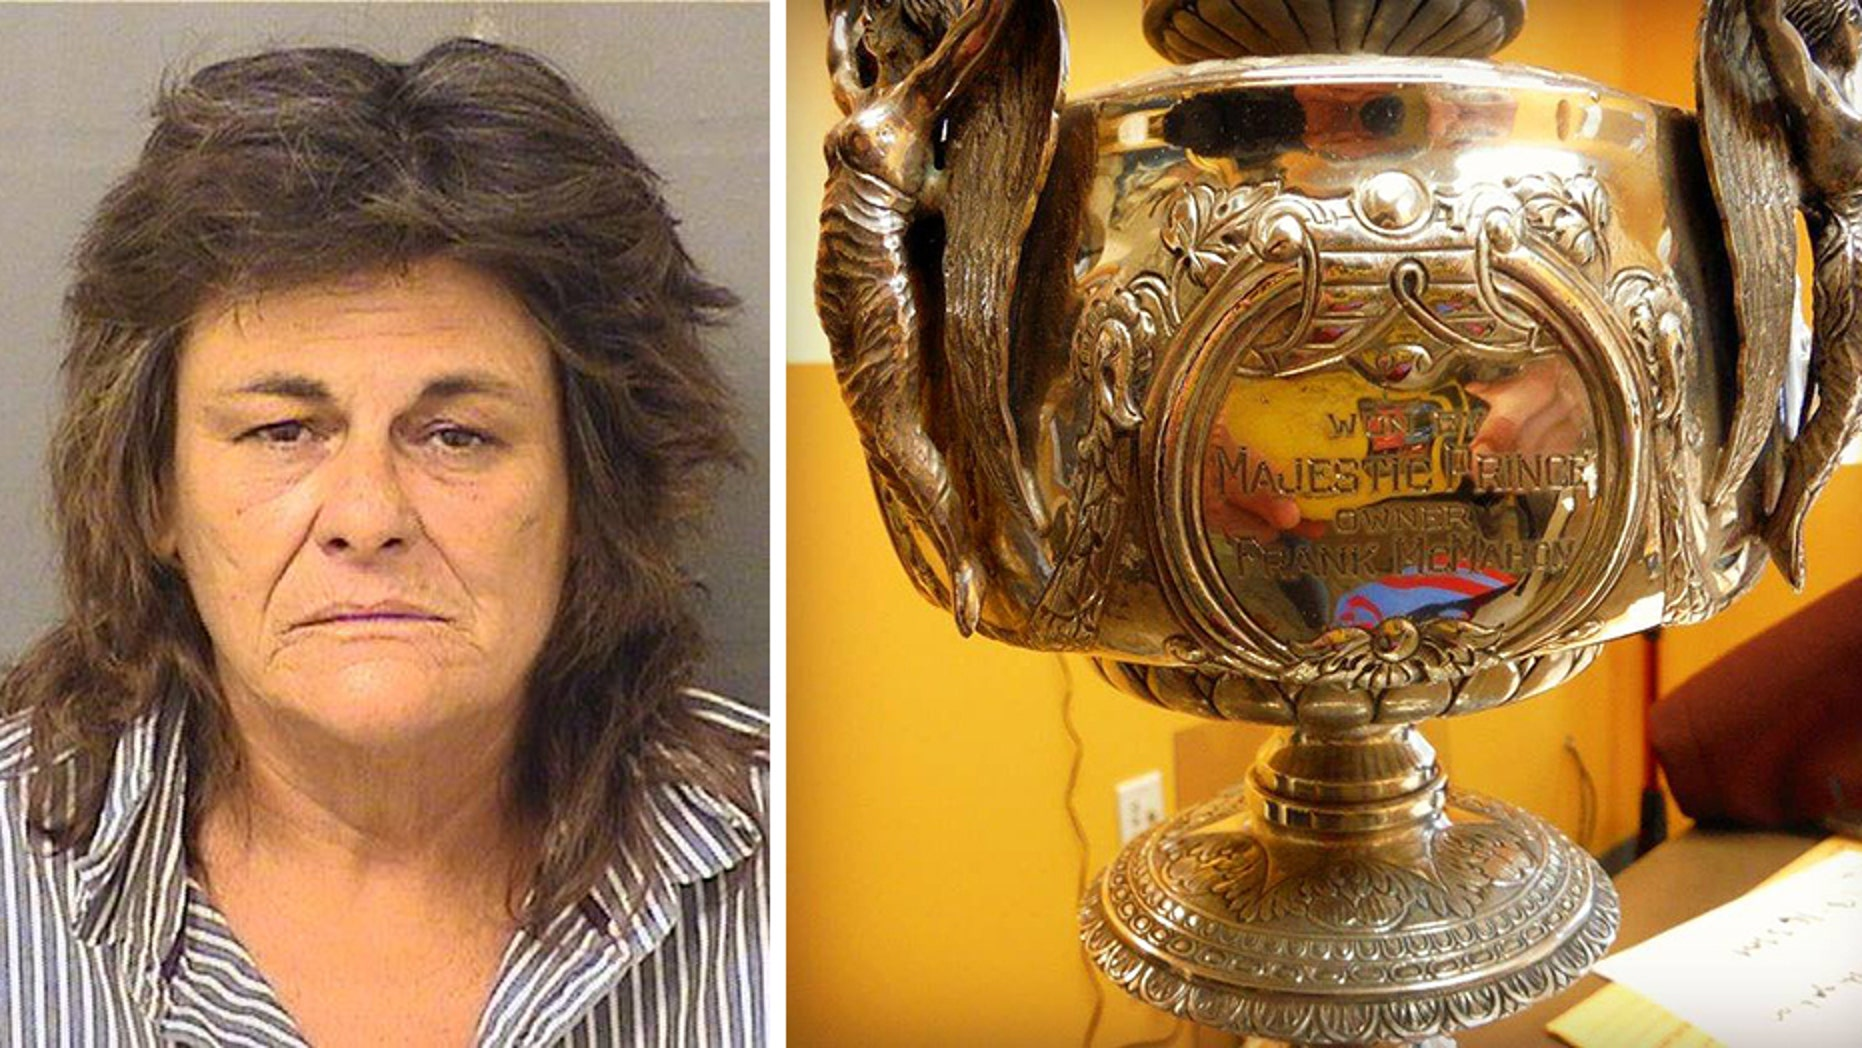 Alicia Murphy is charged with breaking into storage units and stealing hundreds of items, including the 1969 Preakness Stakes trophy.